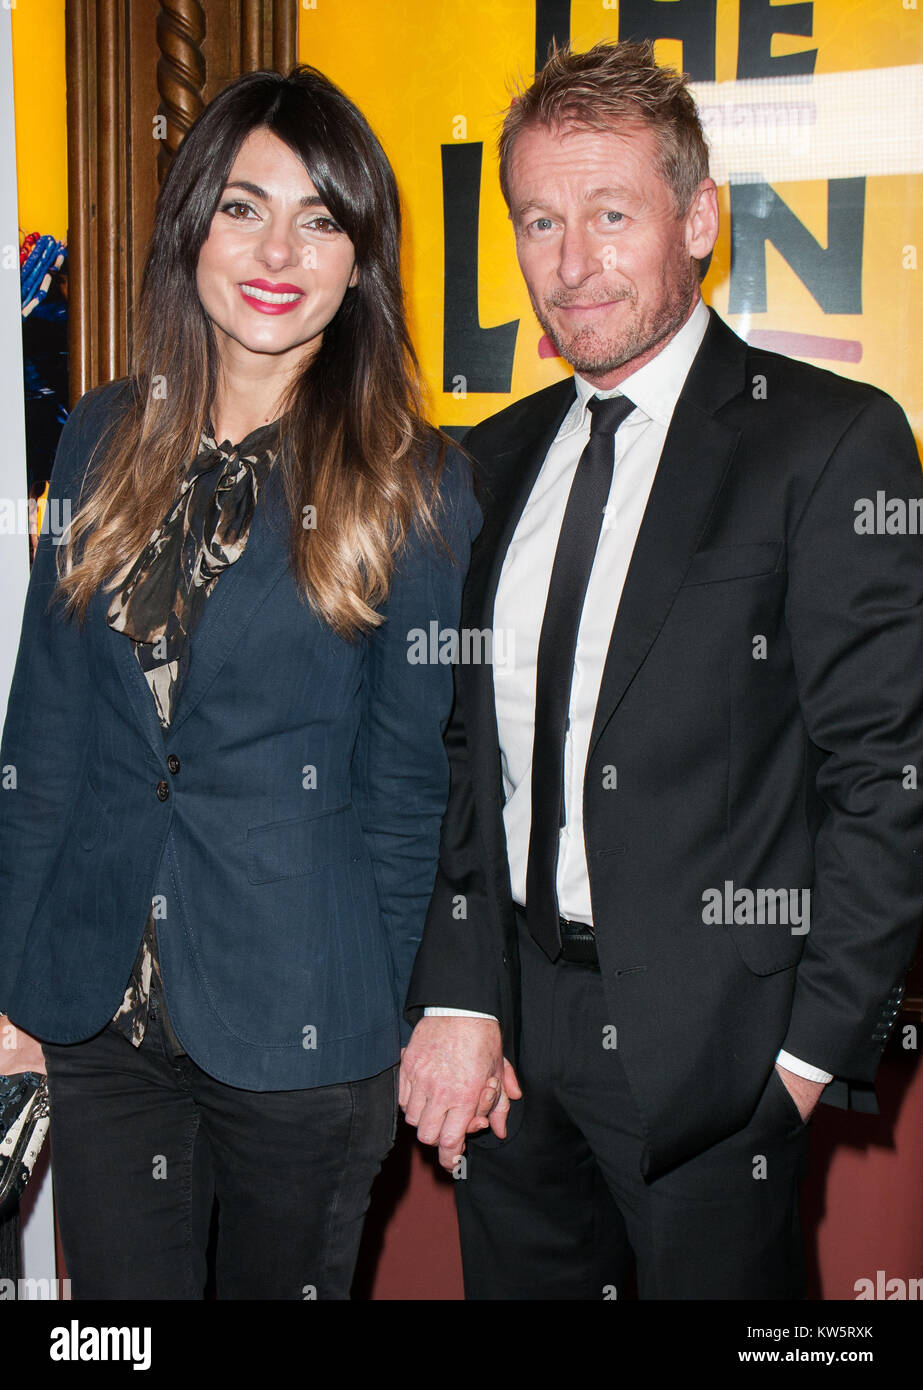 SYDNEY, AUSTRALIA - AUGUST 18: Richard Roxburgh arrives at the 2014 Helpmann Awards at the Capitol Theatre on August - Stock Image